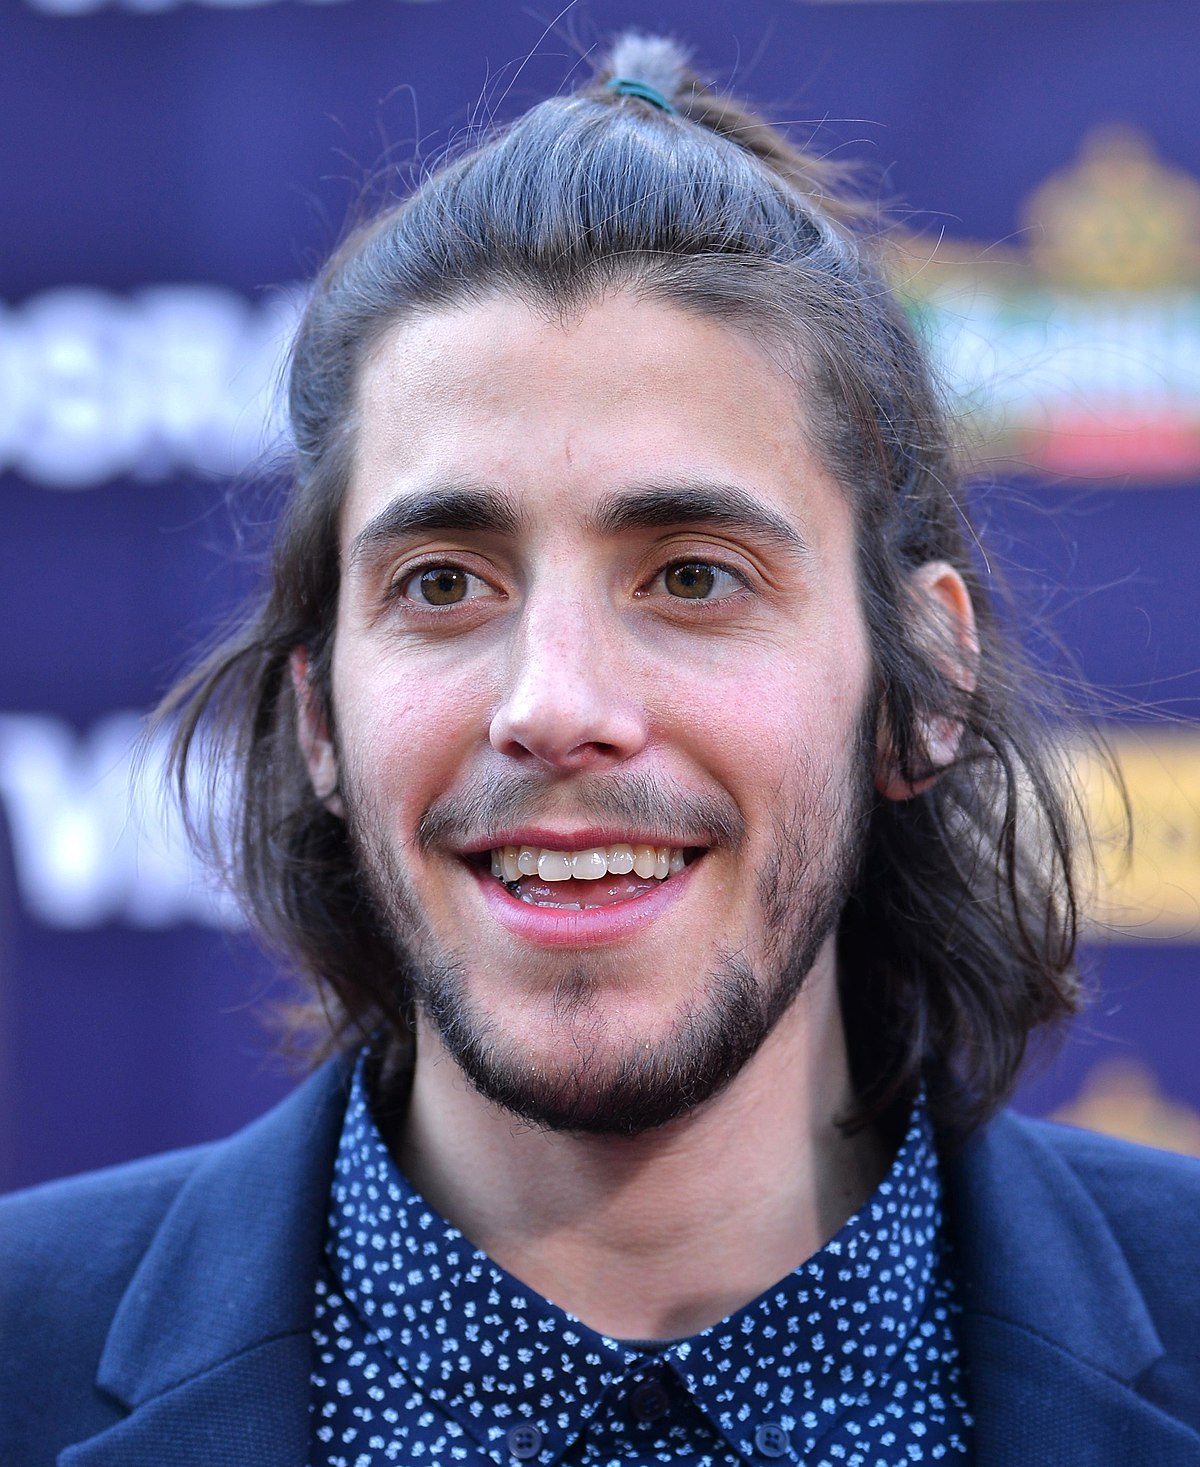 Image Result For Salvador Sobral